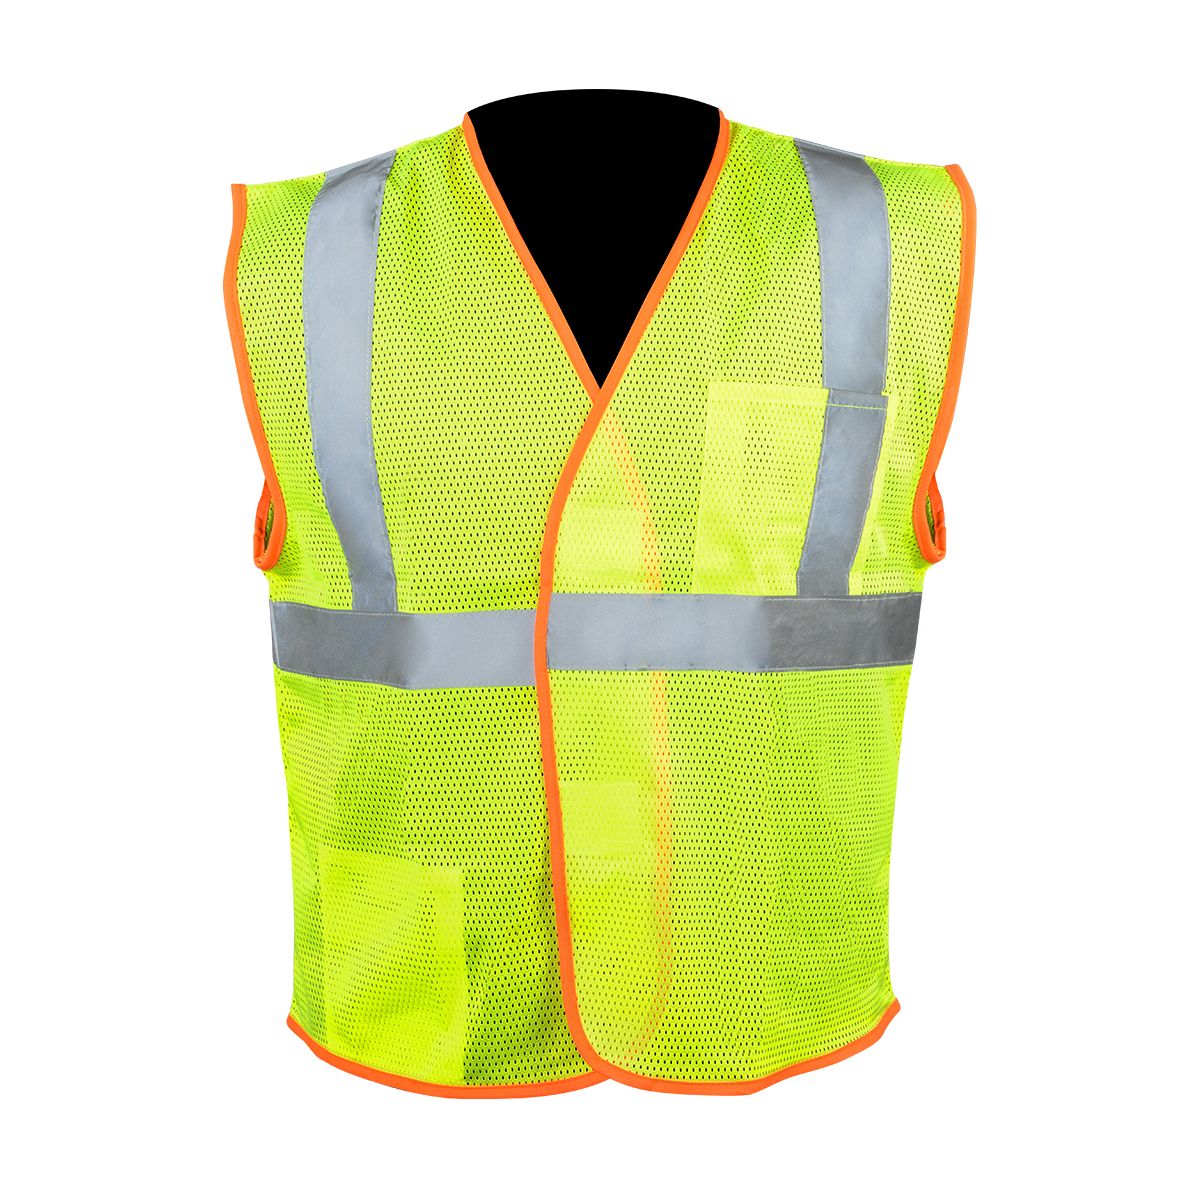 Class 2 High Visibility safety Vest with Hook and Loop